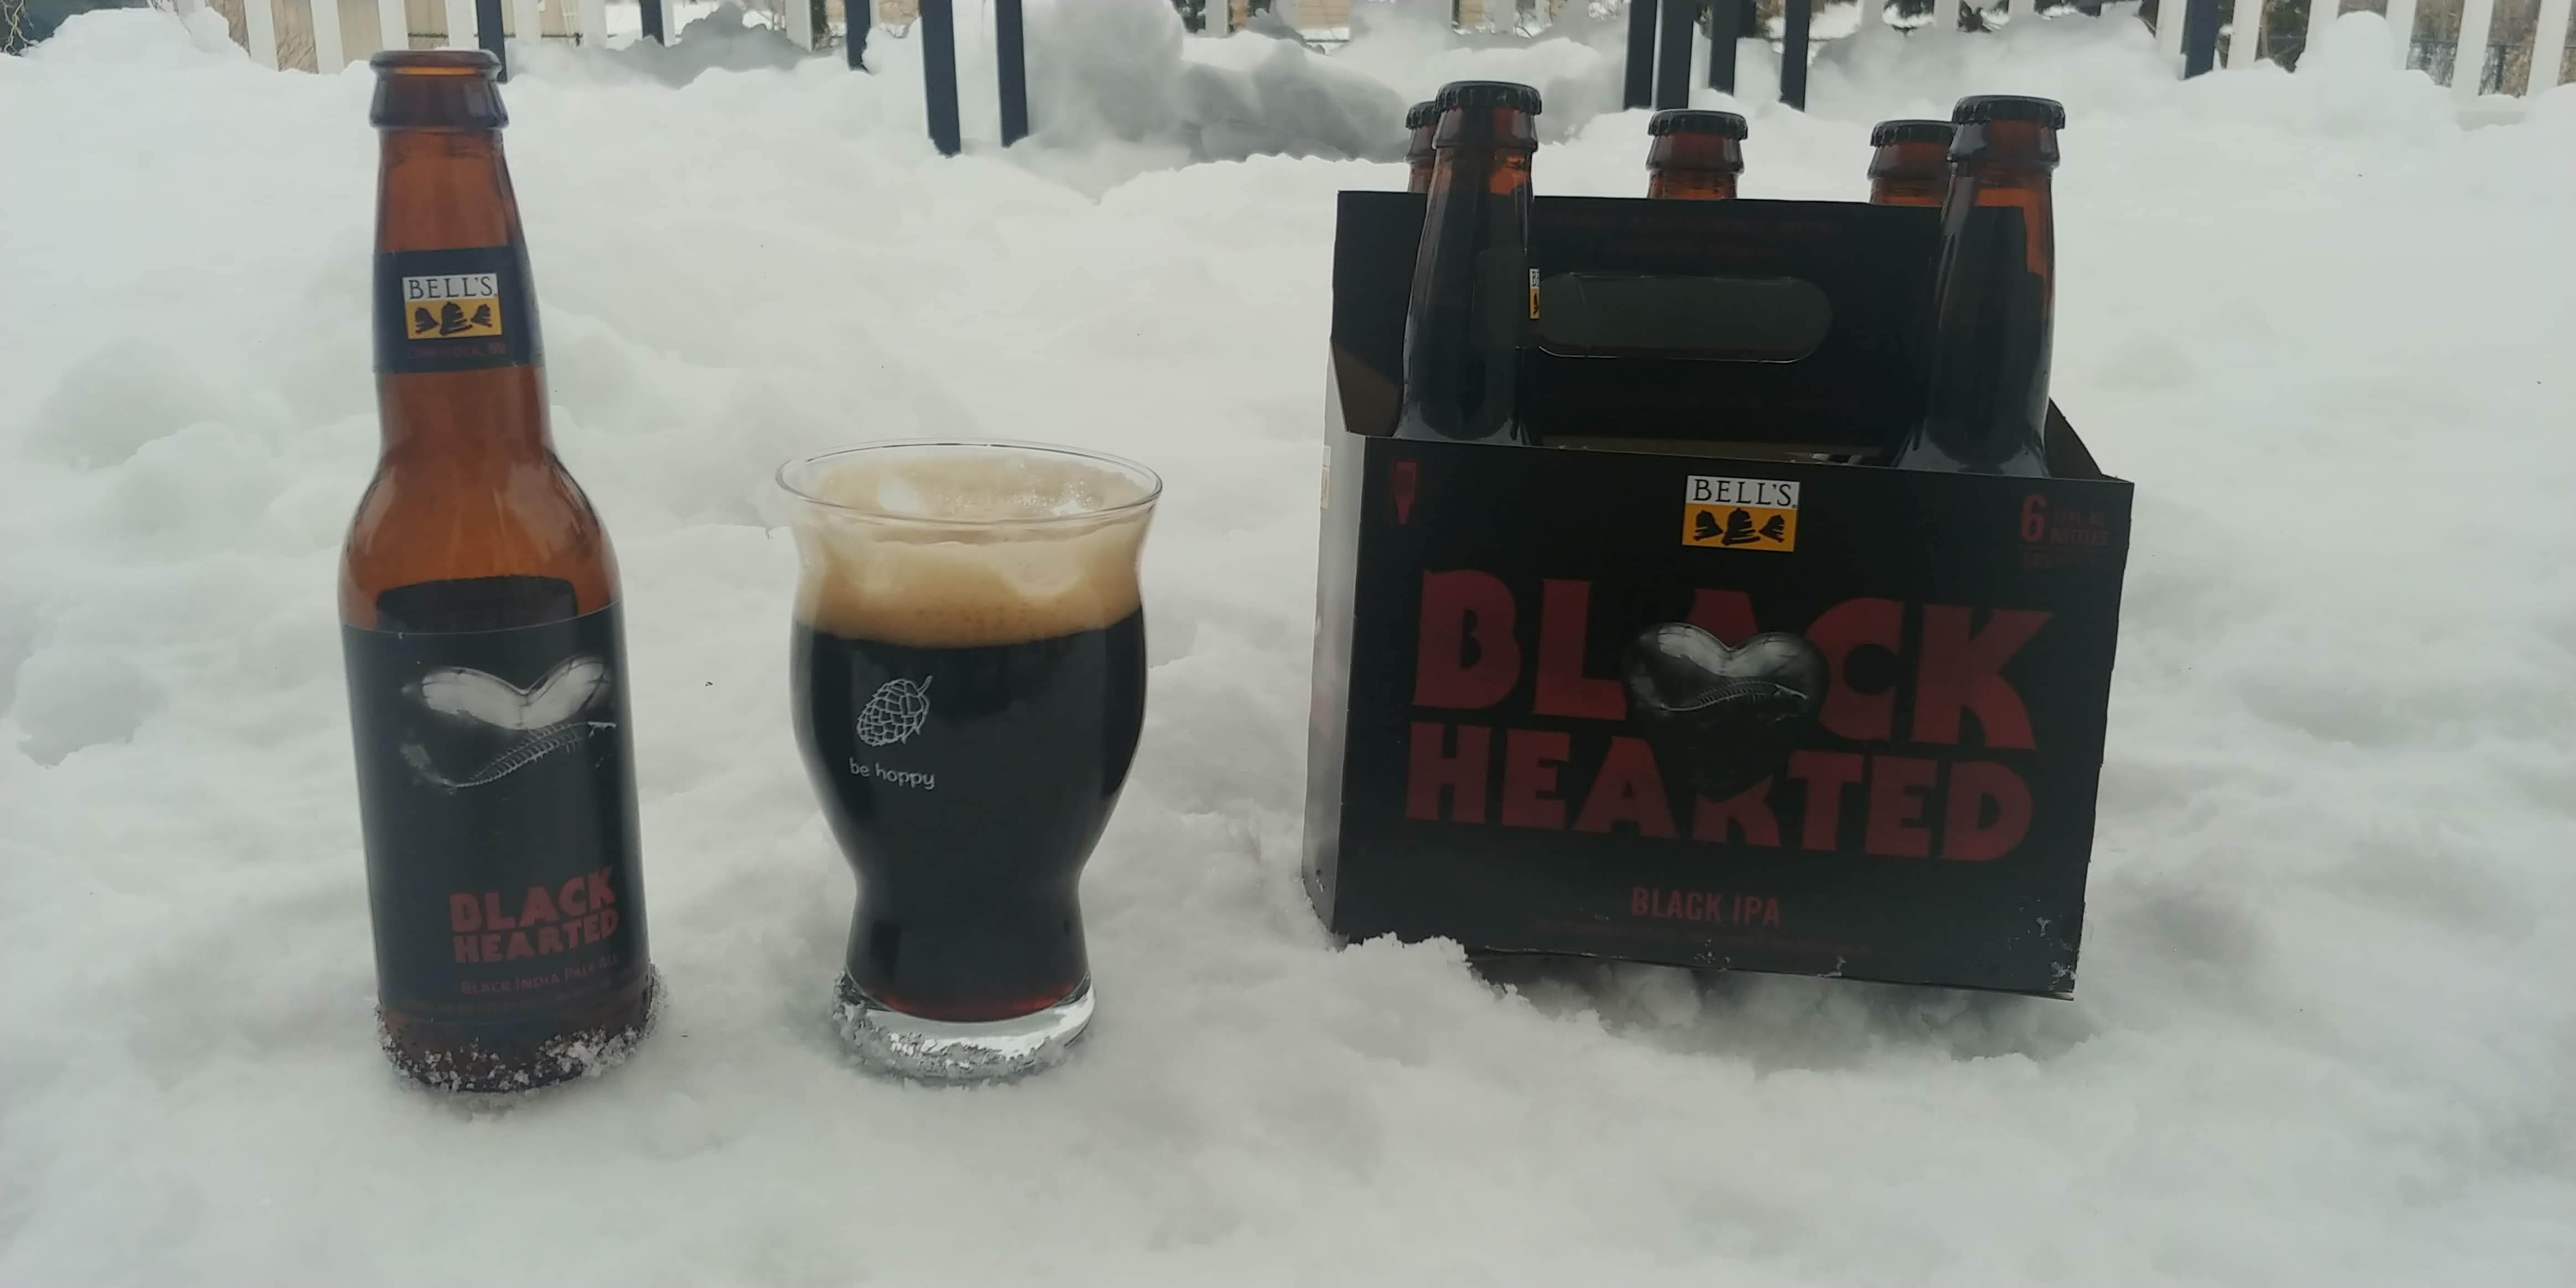 Bell's Black Hearted